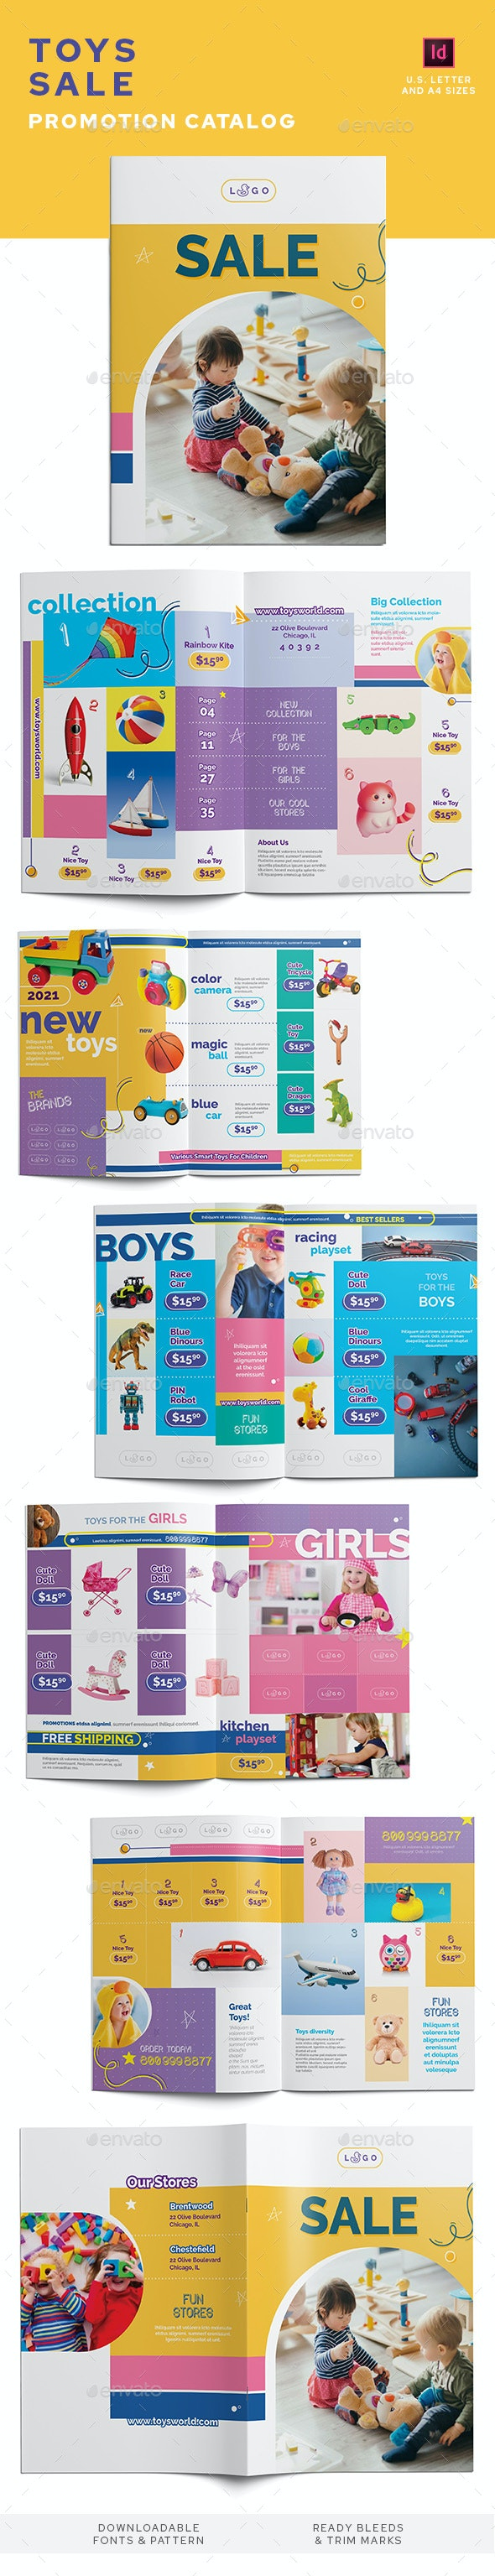 Toys Sale Promotion Catalog - Catalogs Brochures